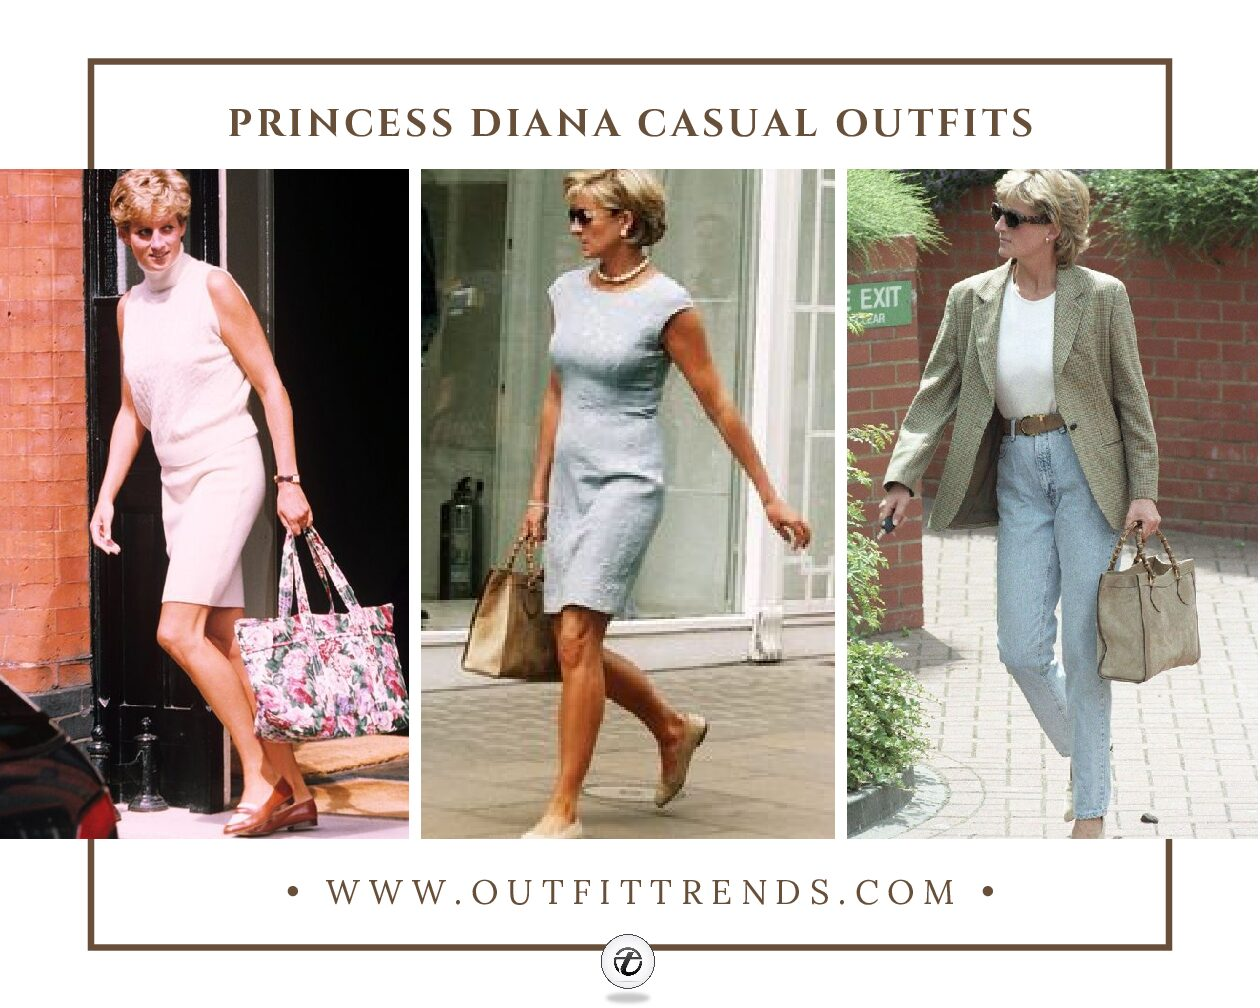 20 Best Princess Diana Casual Outfits Of All Time That We Love